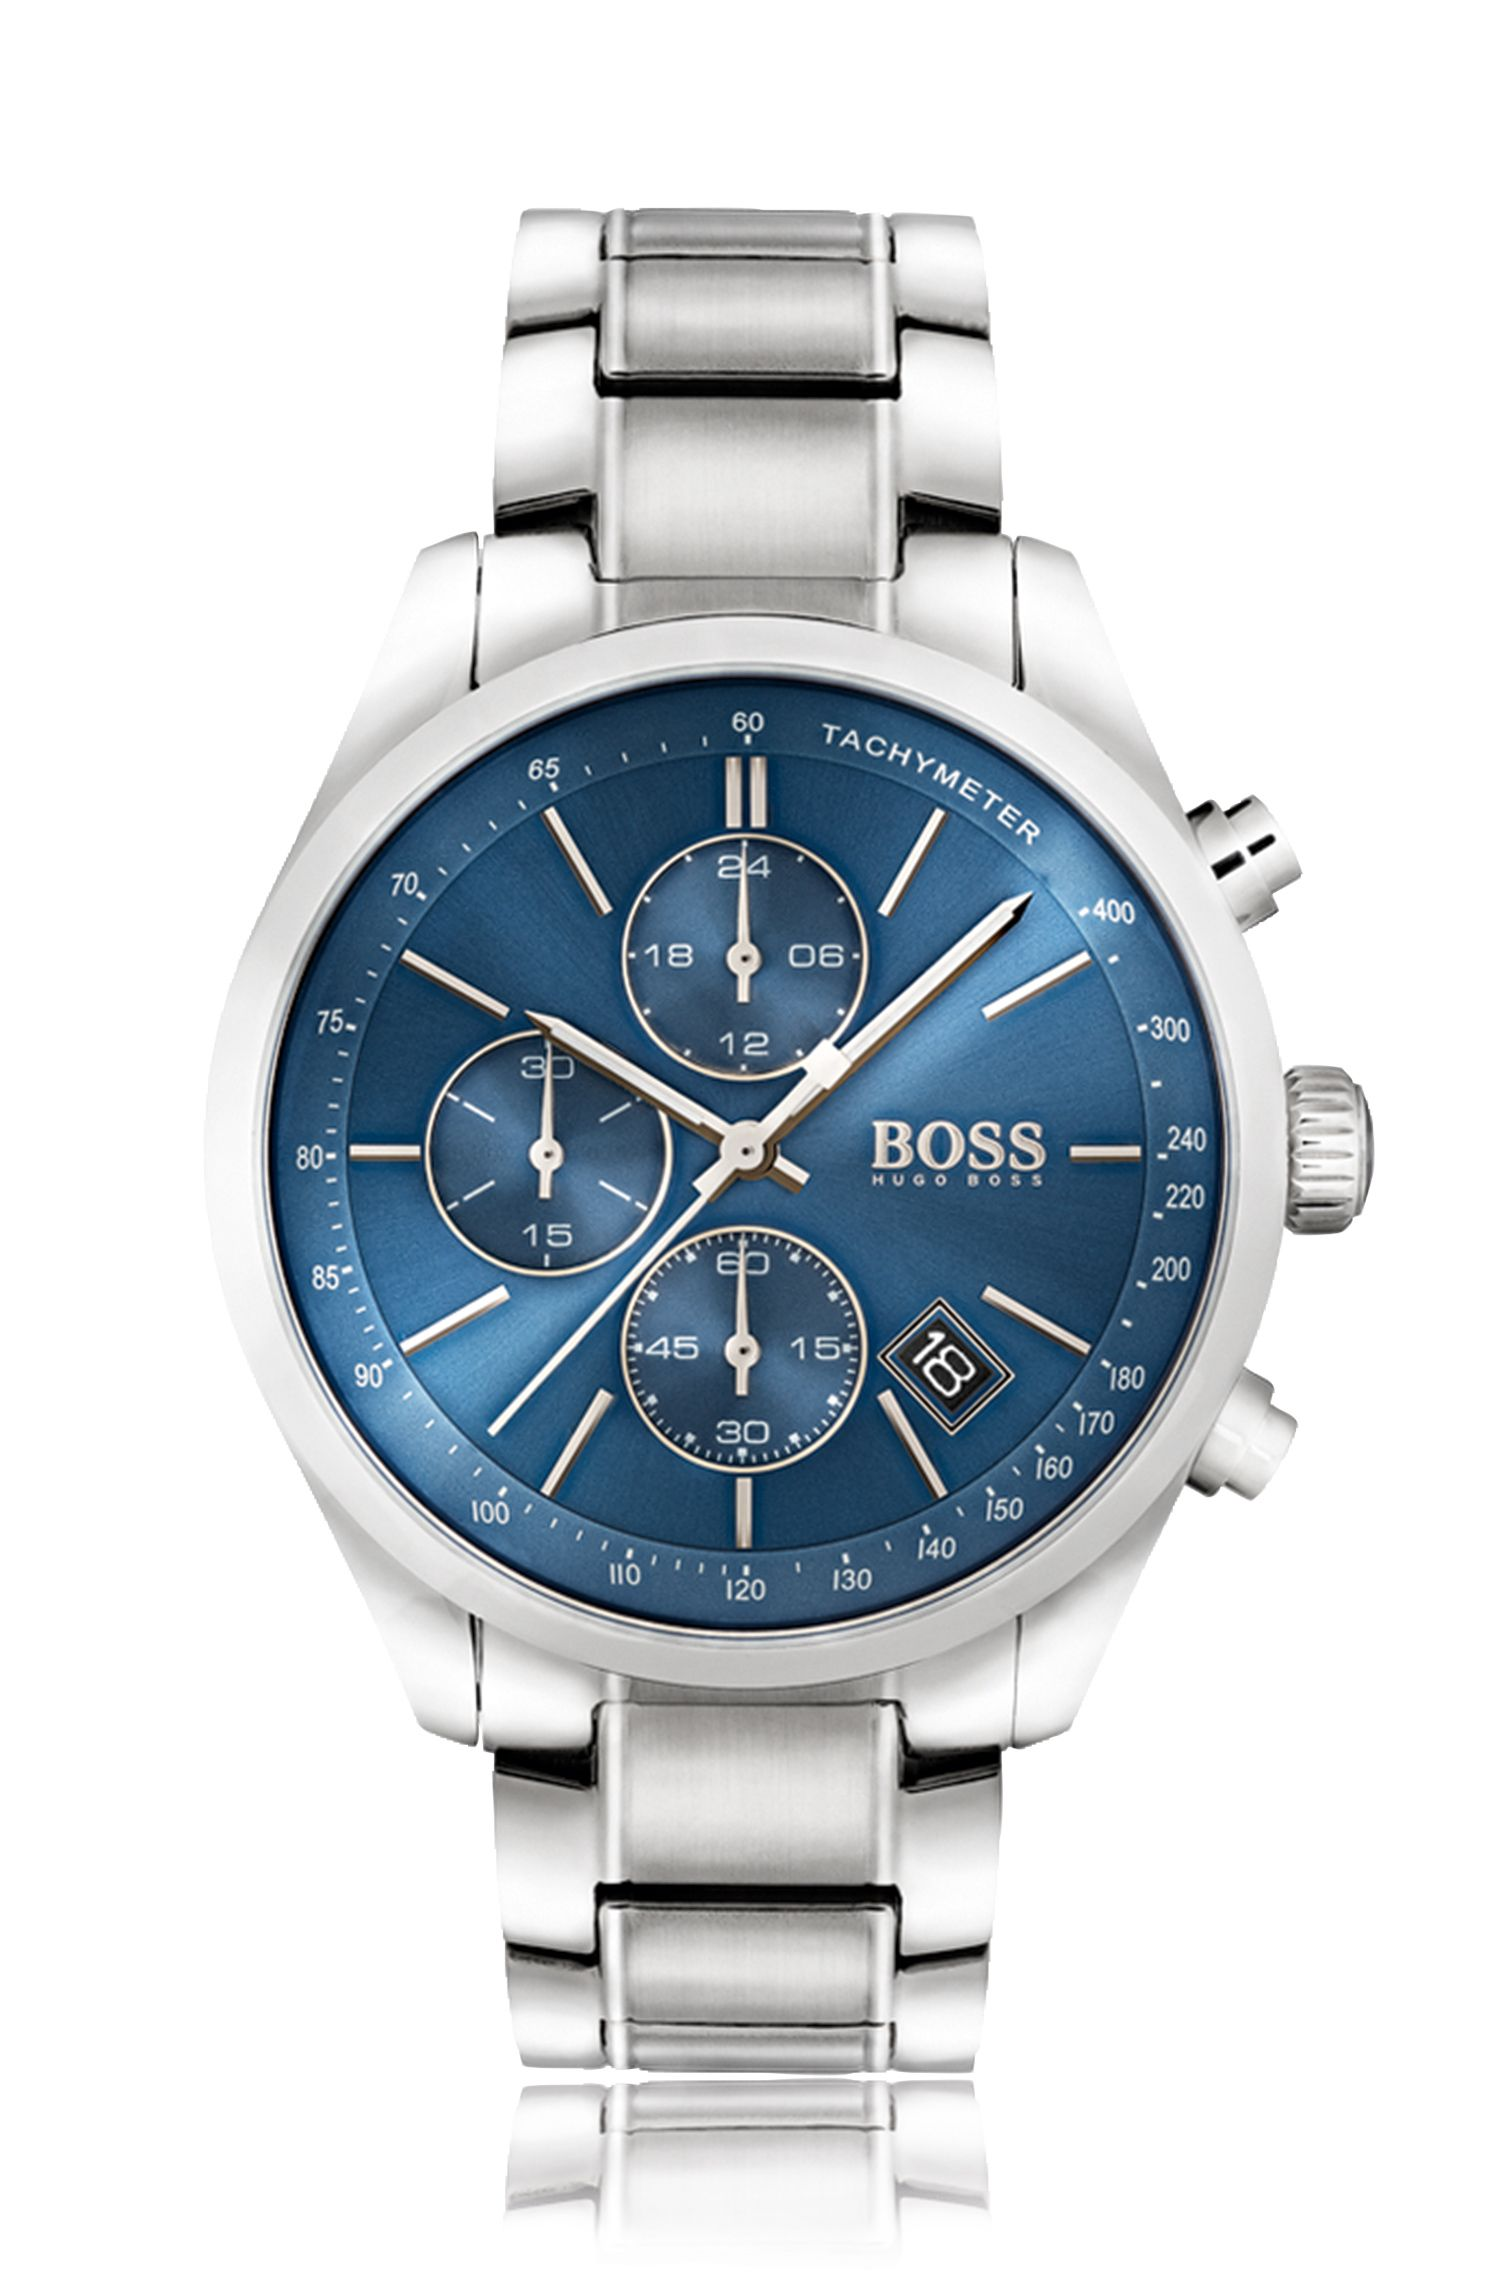 Polished stainless-steel sportswatch with blue sunray dial and link strap